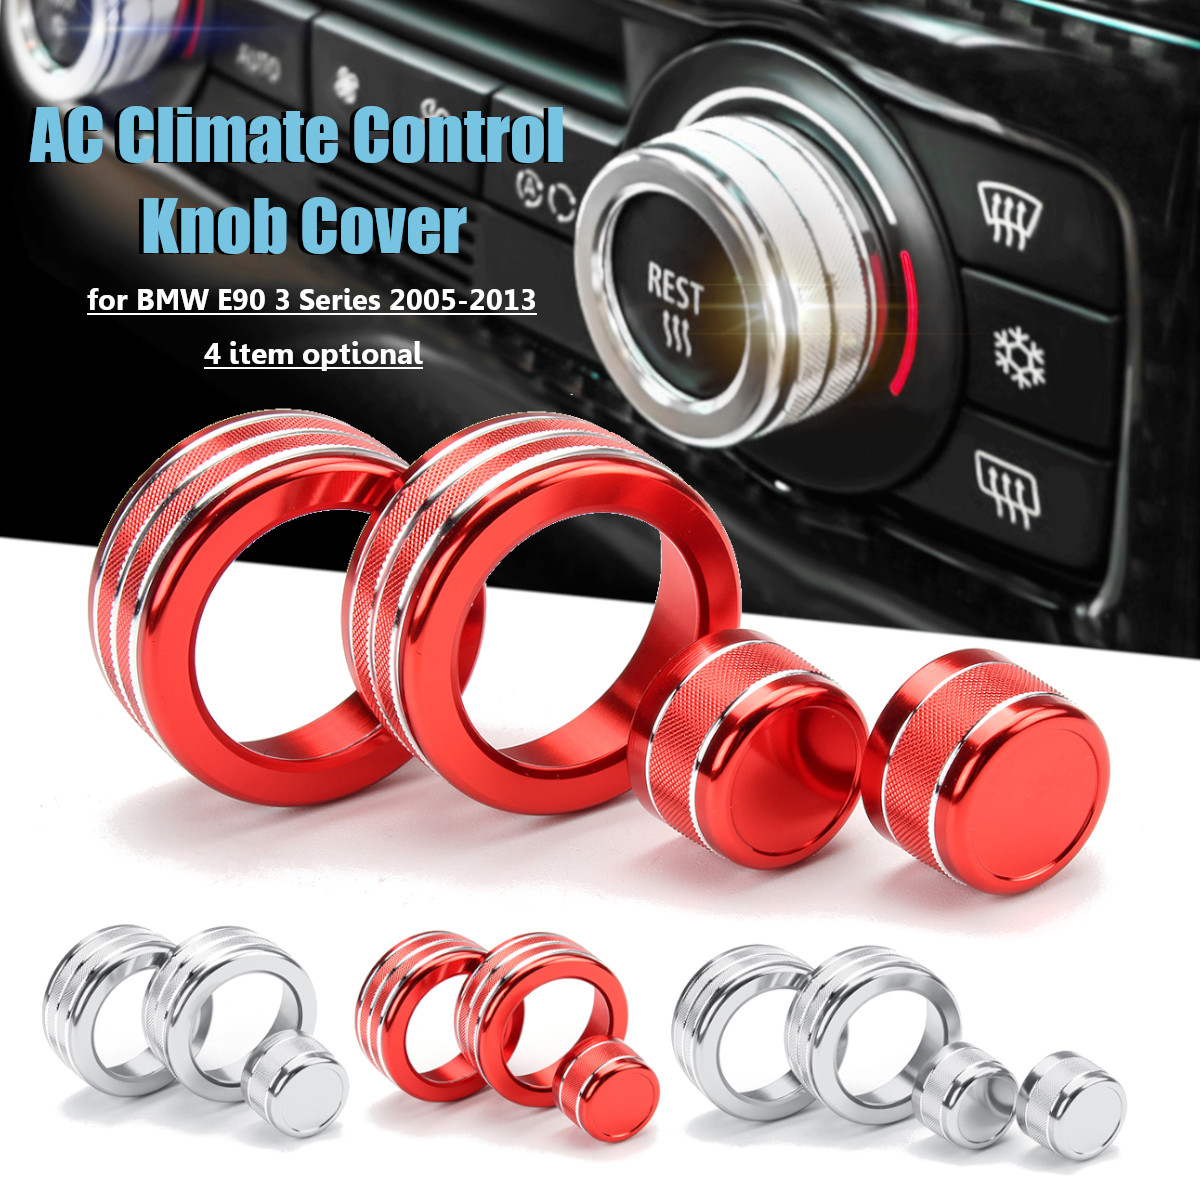 Car Air Conditioning AC Climate Control Stereo Knob Ring Cover for BMW E90 3 Series 2005-2013